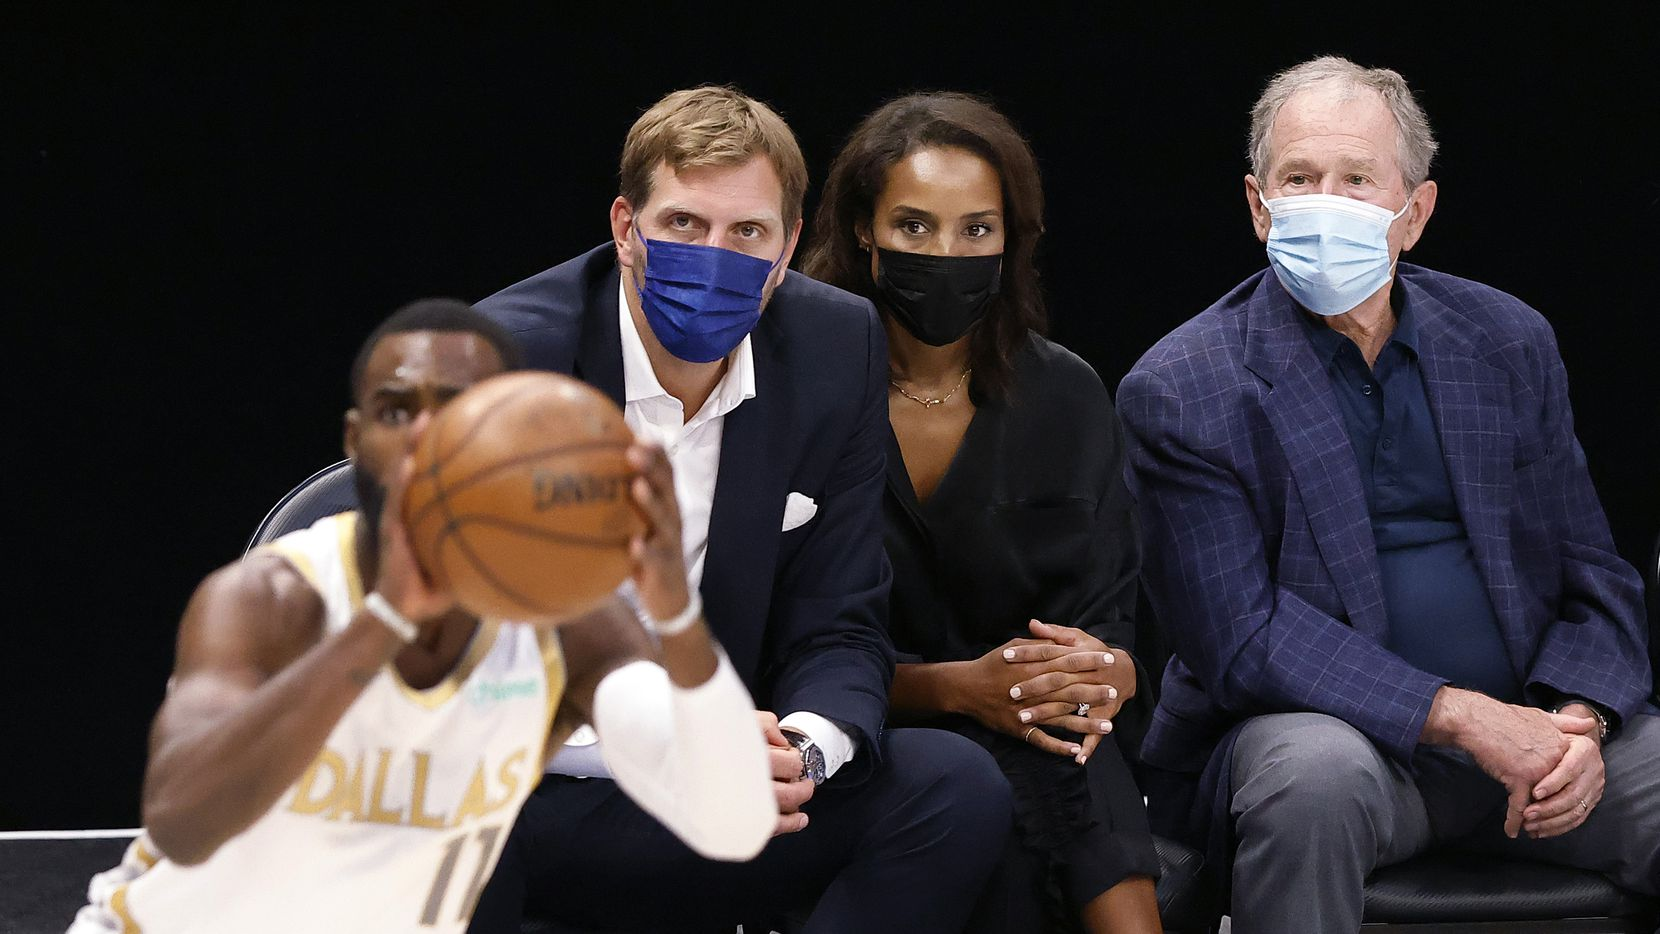 Former Dallas Maverick Dirk Nowitzki (left) and his wife Jessica joined former President George W. Bush in court side seats for the Dallas Mavericks-Brooklyn Nets game at the American Airlines Center in Dallas, Thursday, May 6, 2021.